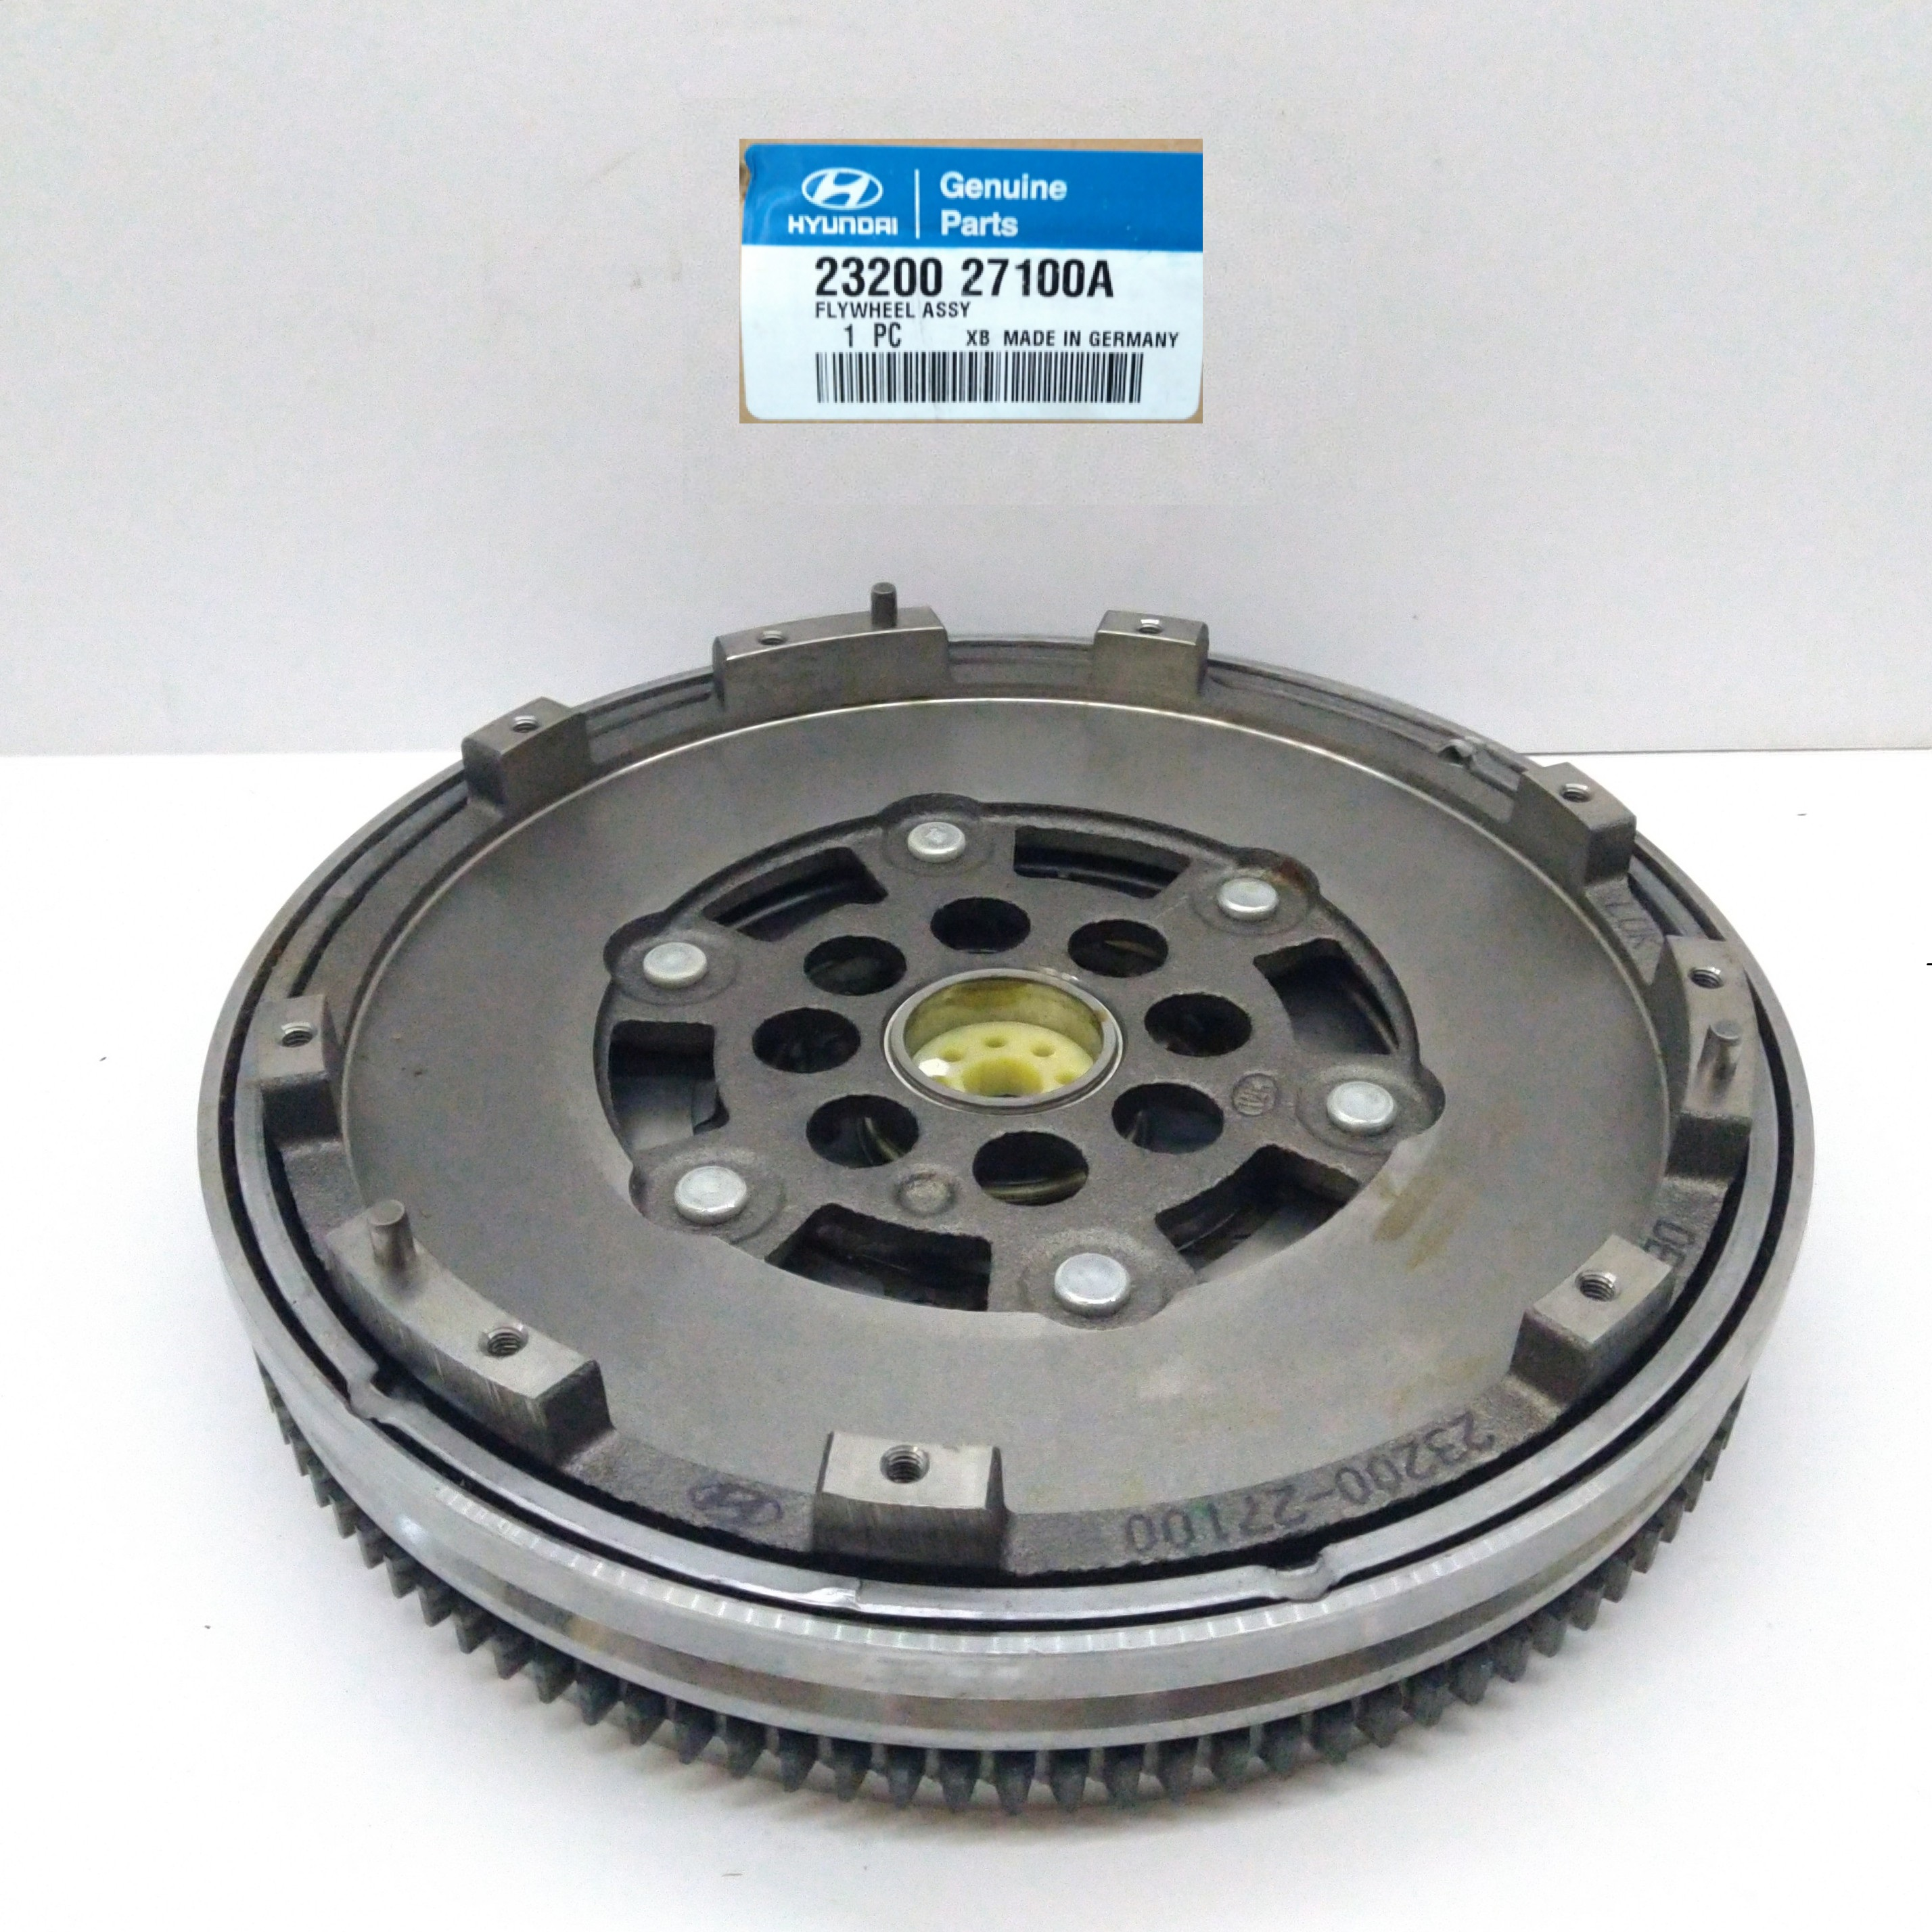 FLYWHEEL GEAR CROWN HYUNDAI SANTA FE '2.0 ORIGINAL 2320027100A